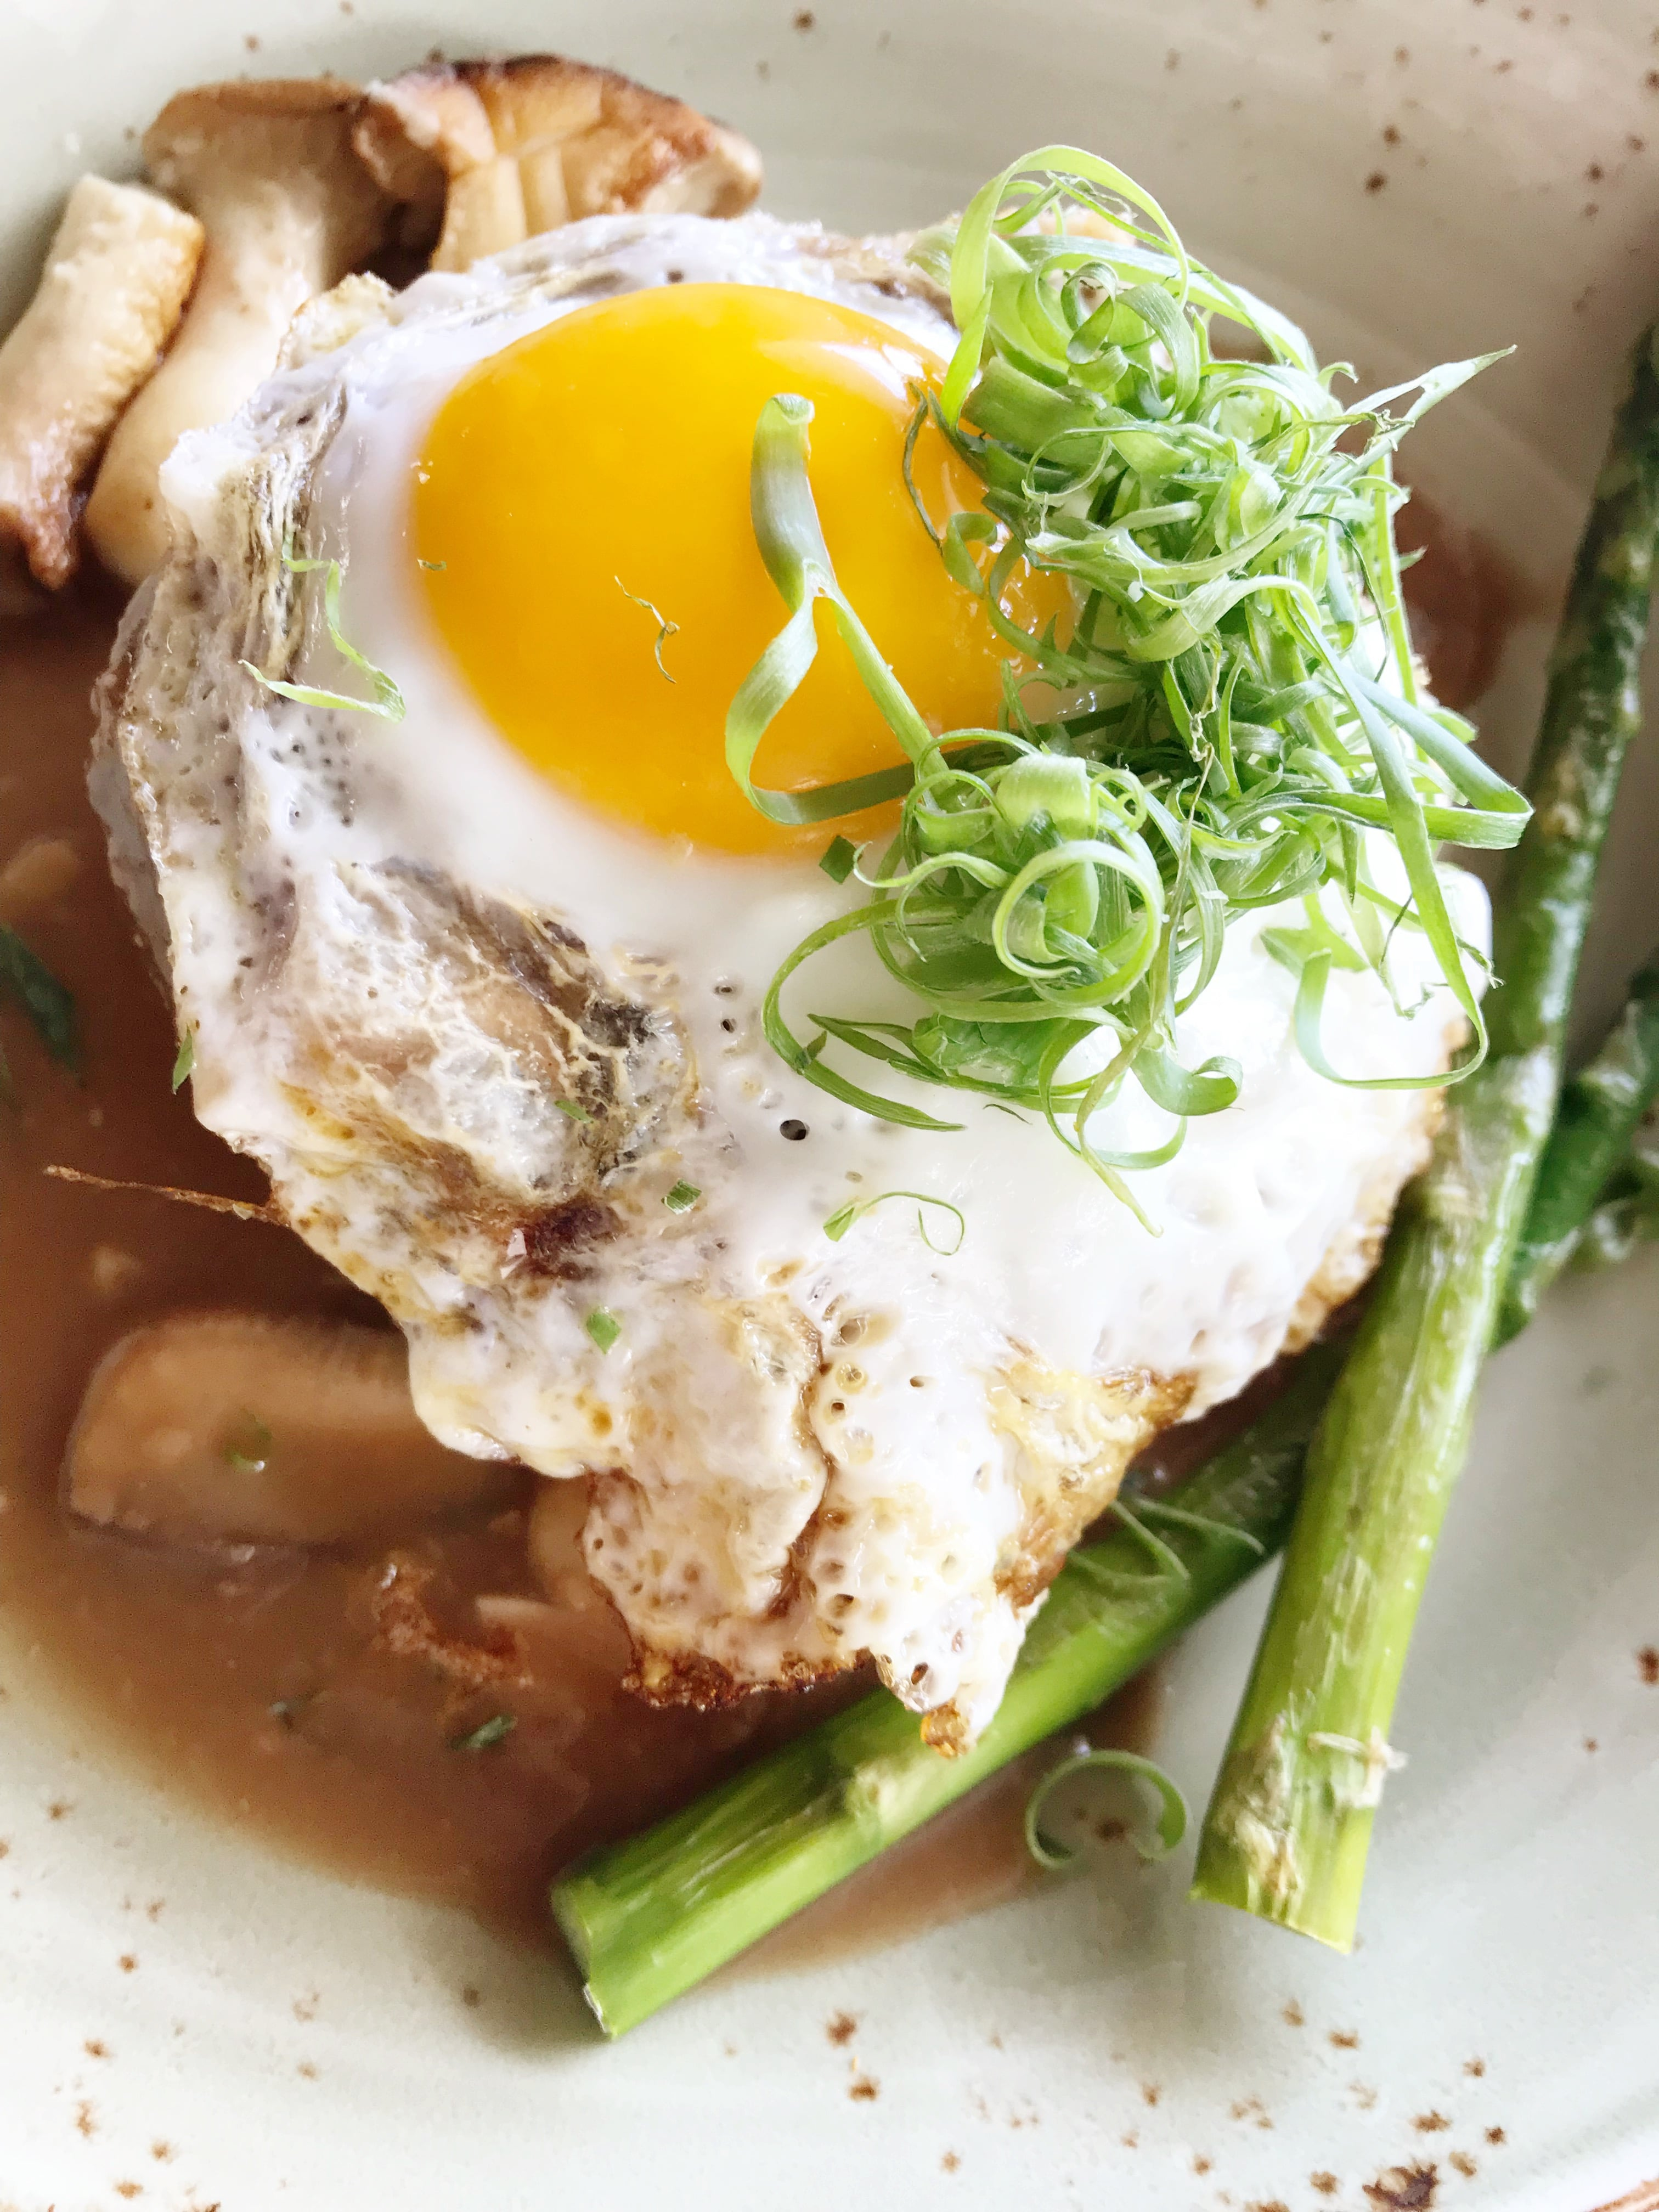 Eating At Halekulani's Restaurant House Without A Key, dish with asparagus and friend egg